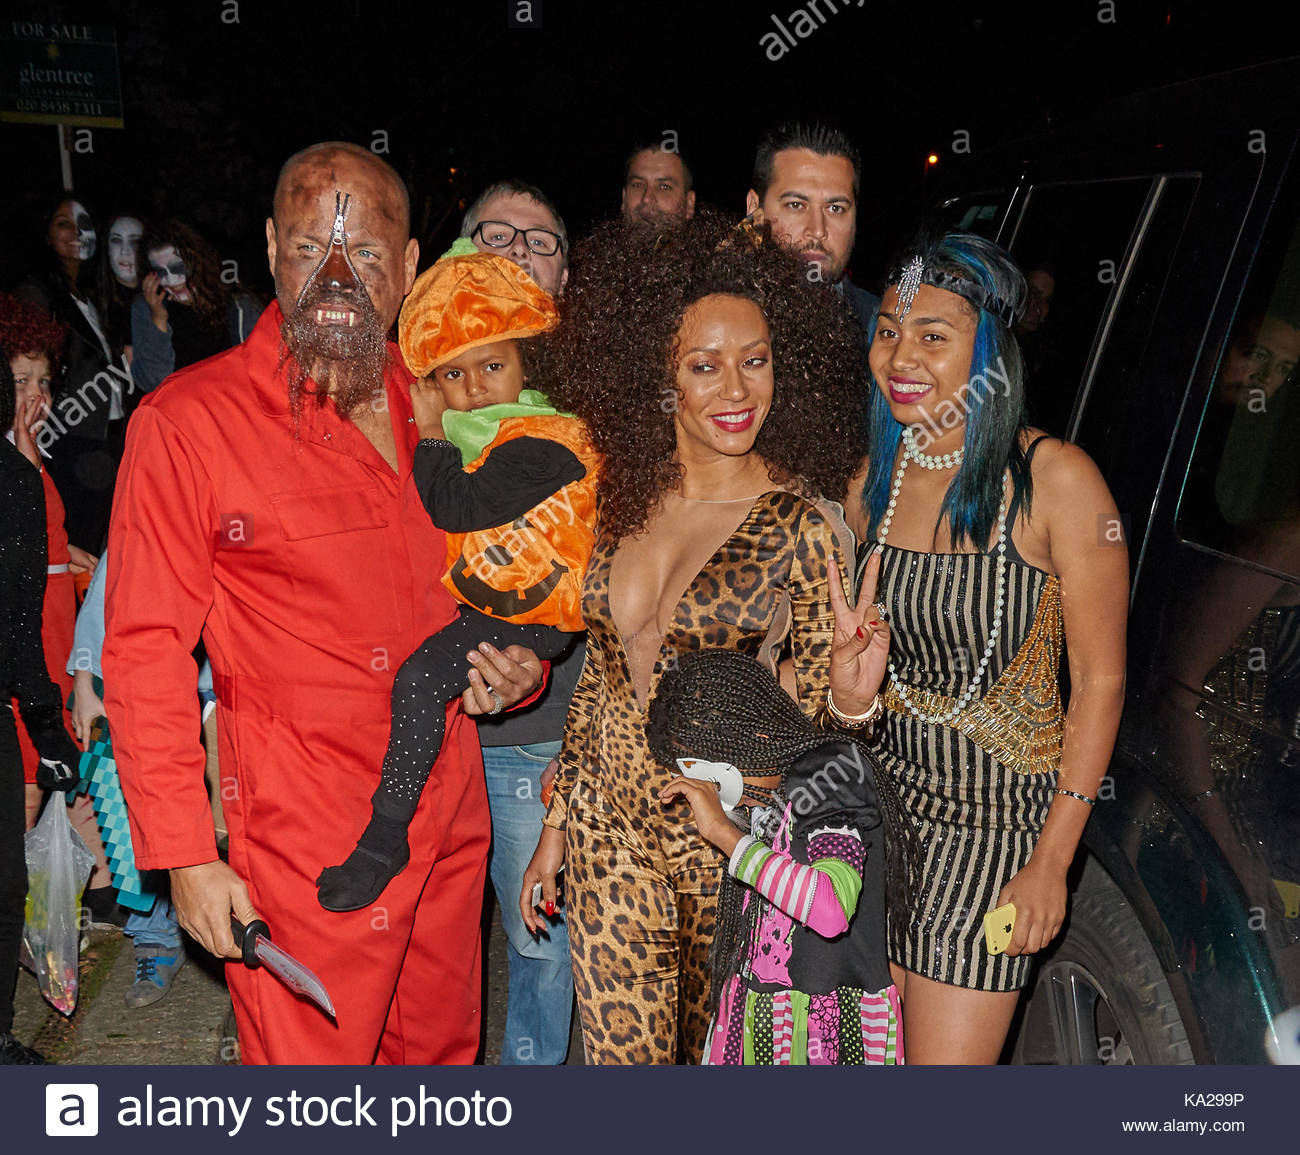 mel b stephen belafonte phoenix chi gulzar madison belafonte and angel brown jonathan ross hosts his annual halloween party in london